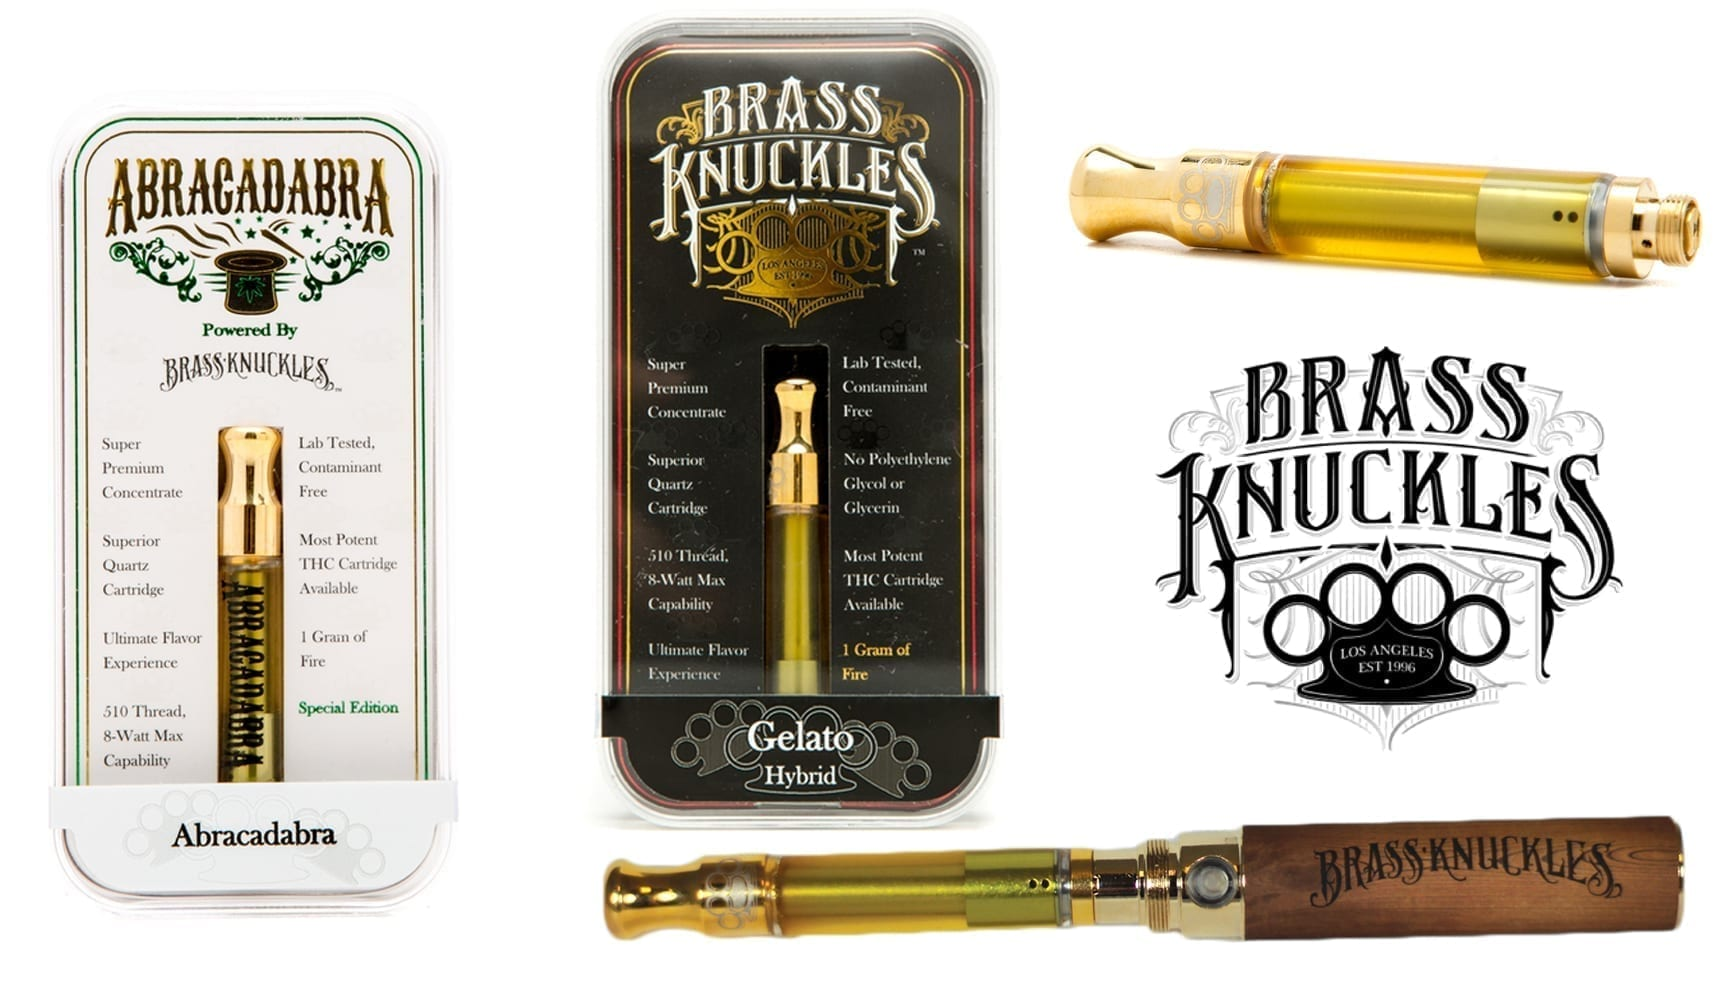 Brass Knuckles Vape Pen Review - Excellent Taste - DabConnection